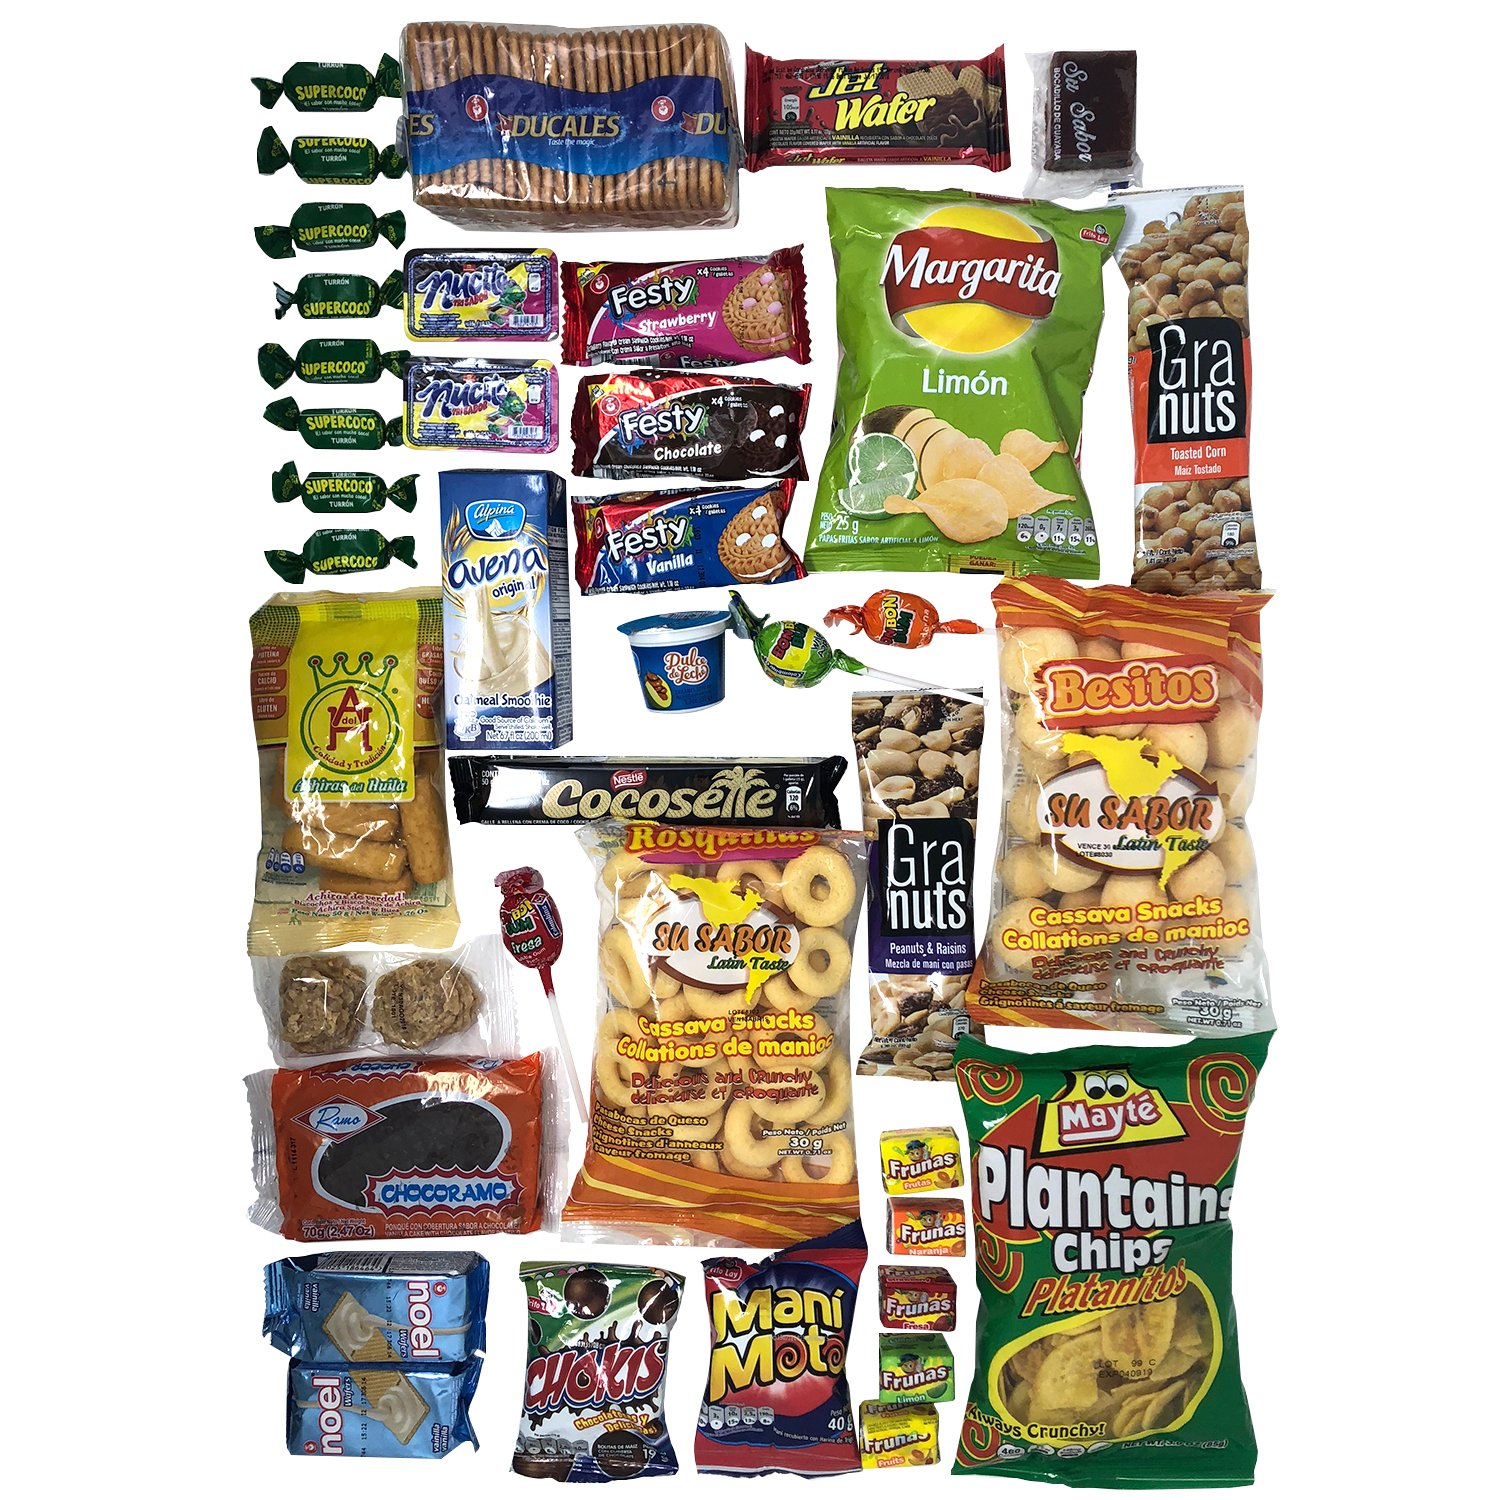 Colombian Snacks Sampler Box - Mecato Colombiano - Cookies, Chips & Candies Variety Pack (40 count / 25 different items plus one 16 count nucita ...